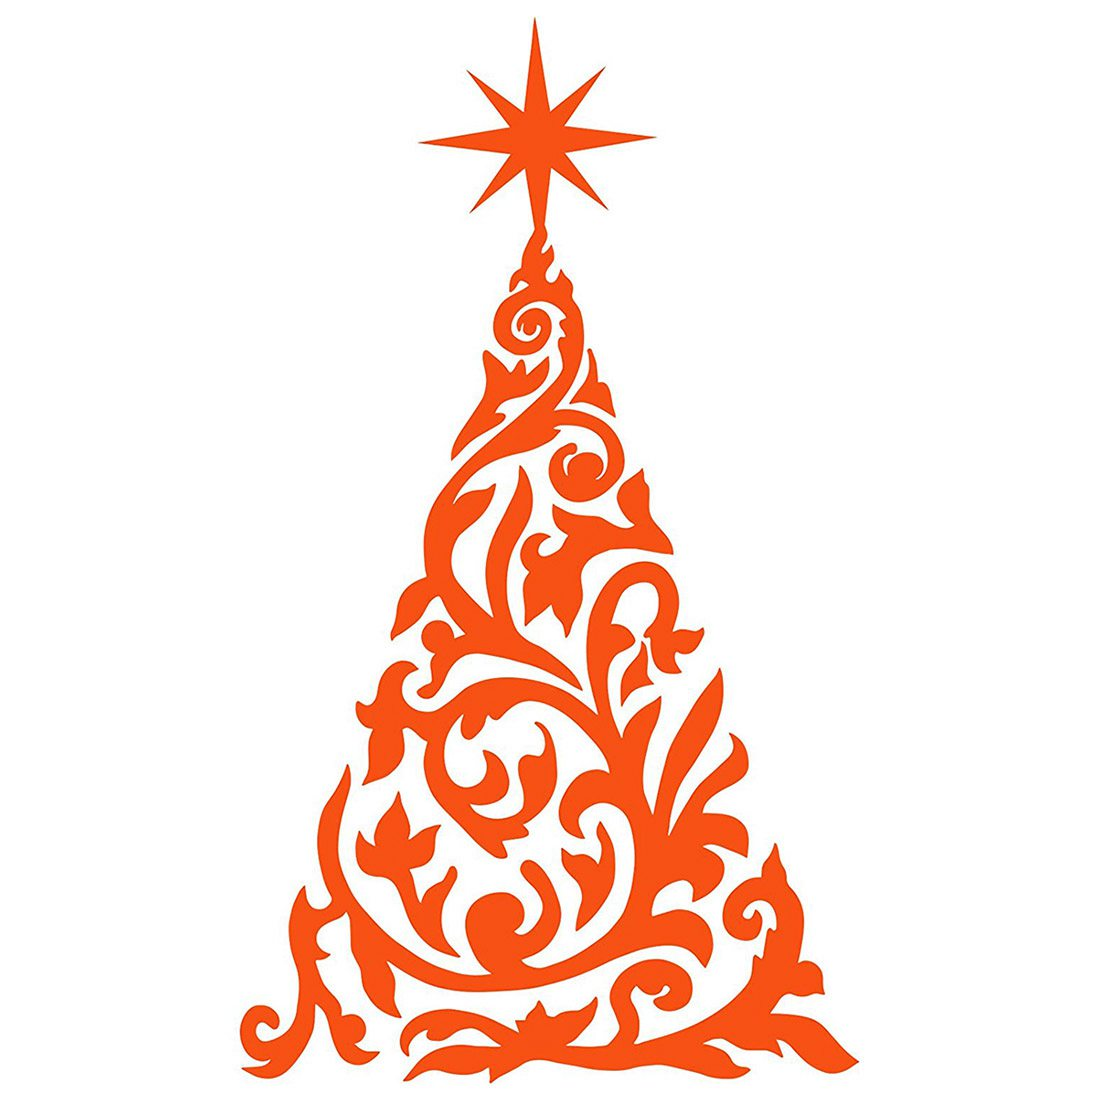 60cm*35cm Orange Christmas Tree, Christmas Decoration, Windows and Wall Sticker, Art, Xmas Decals, Ornament PVC Sticker